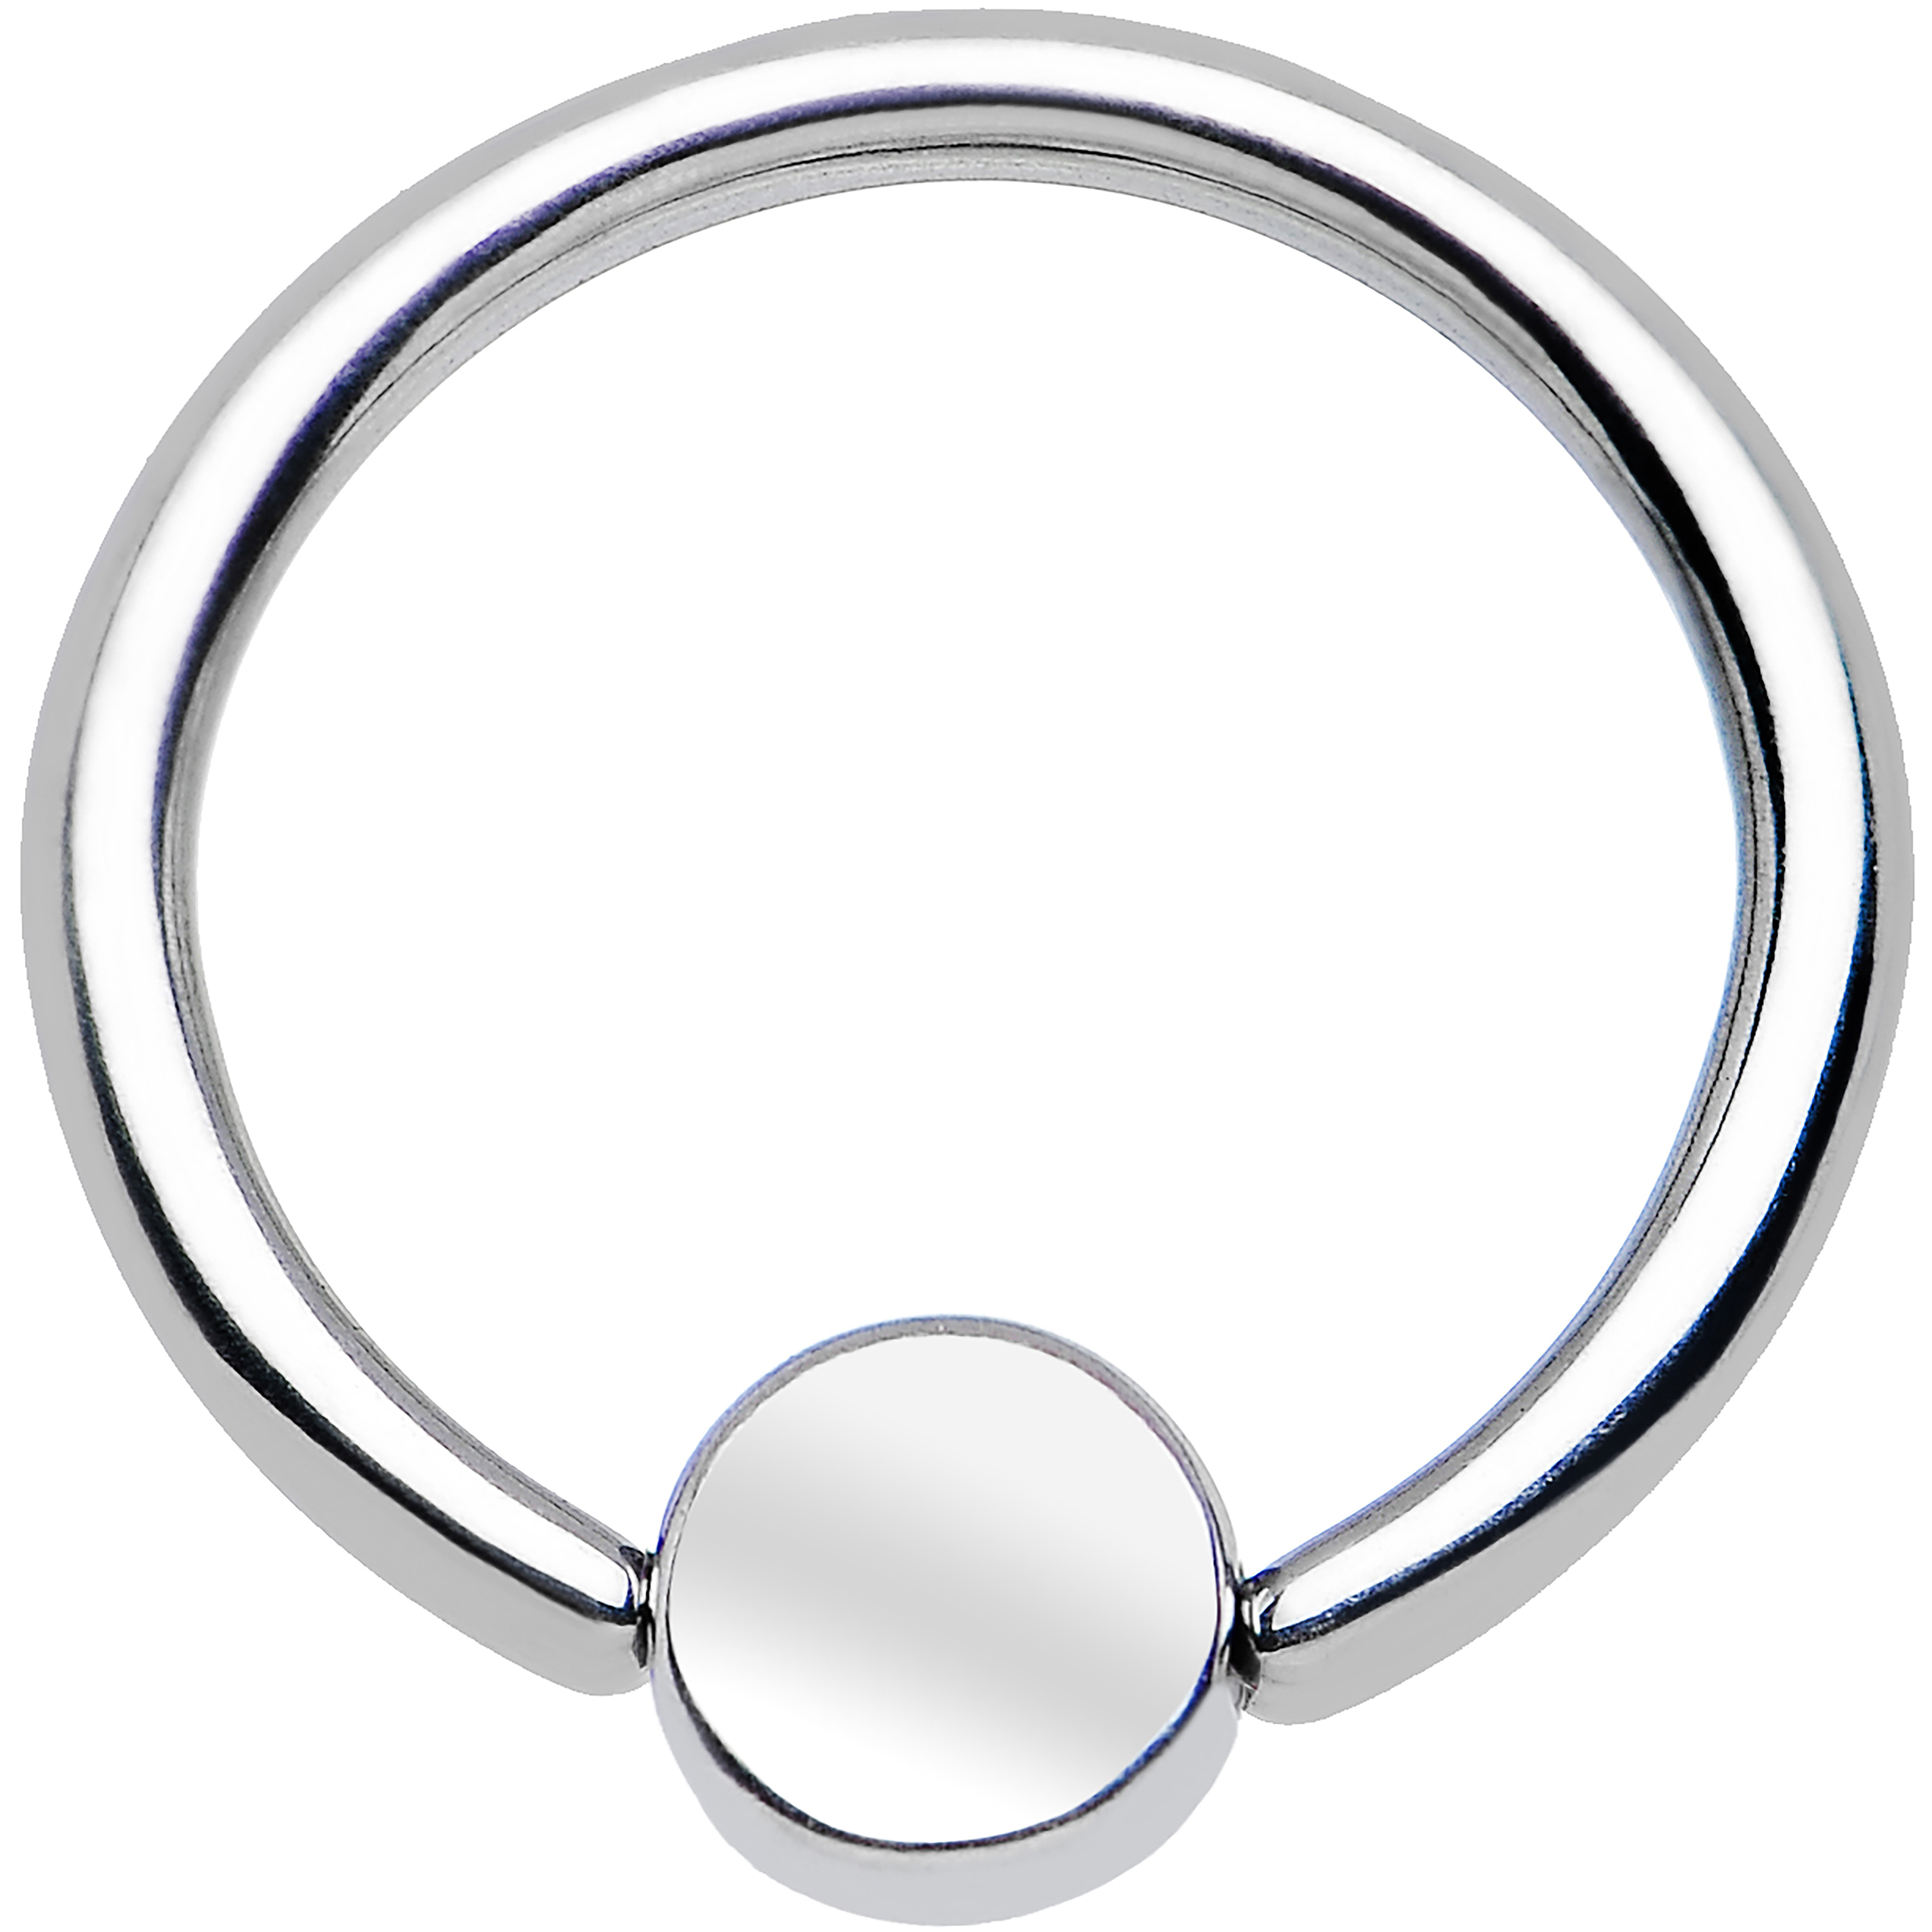 Stainless Steel BCR Captive Ring 4mm Flat Disc16 Gauge 3/8